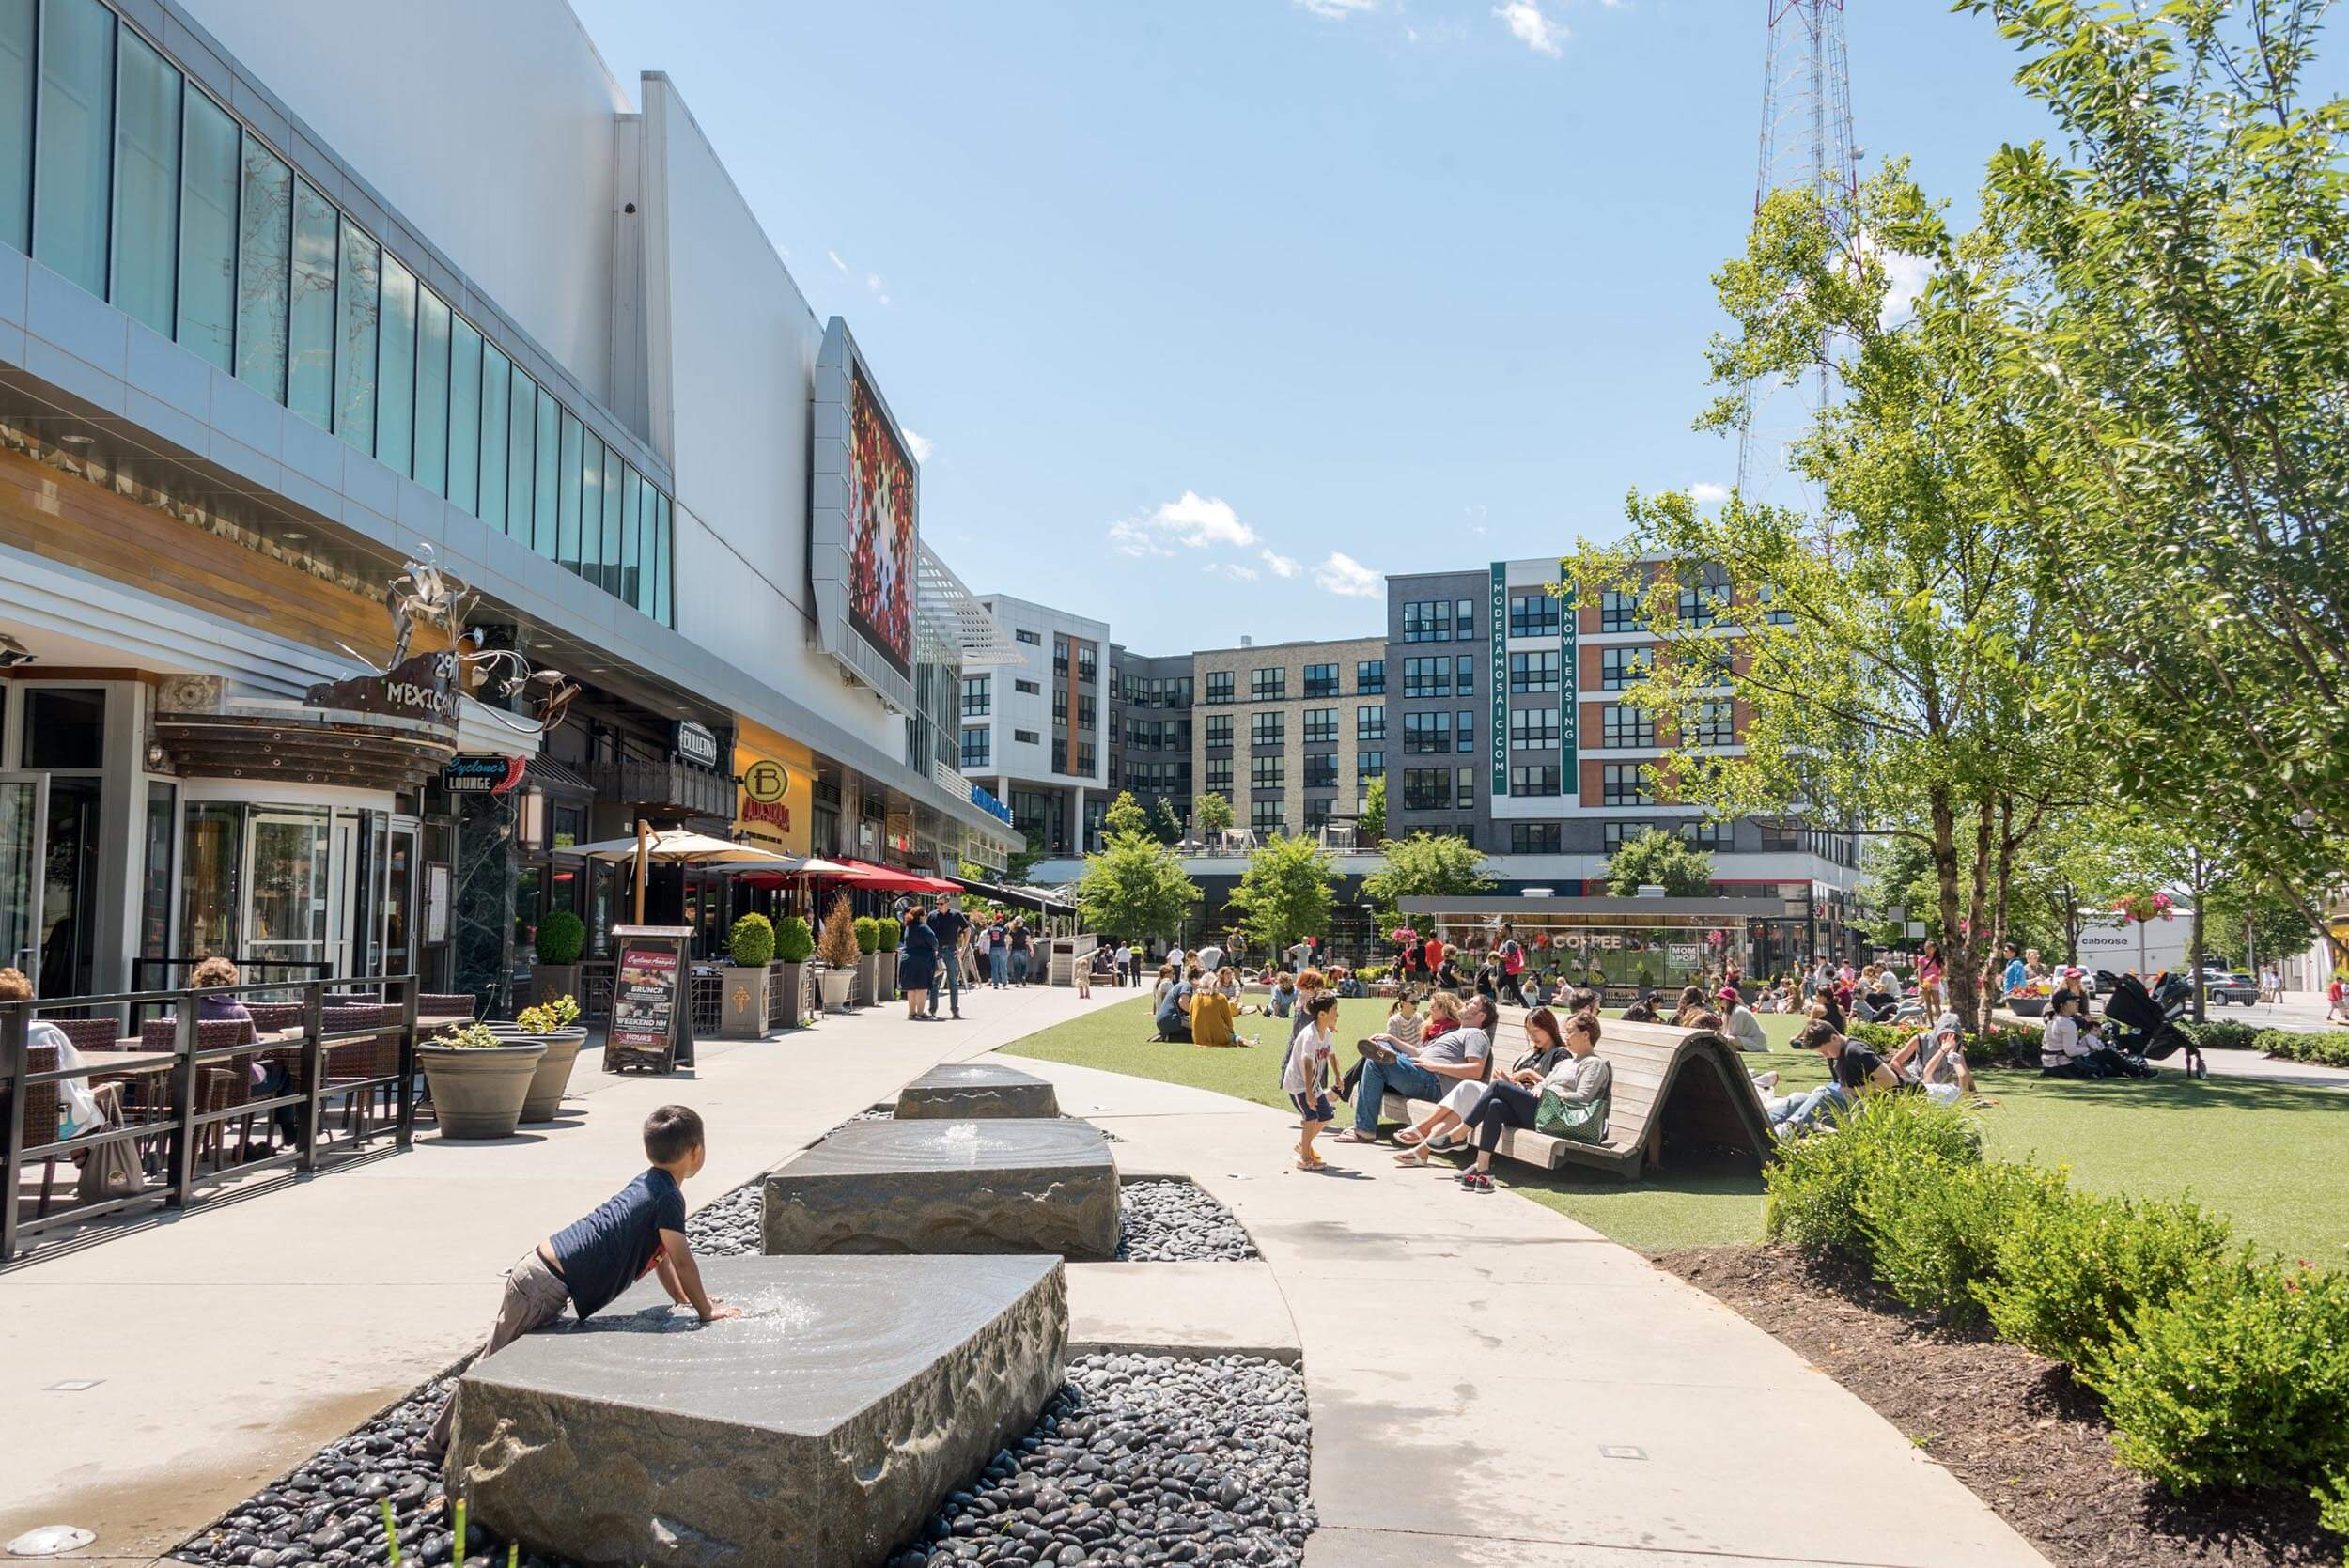 The Mosaic District in Fairfax County, Virginia offers national retailers, gourmet dining, a movie theater and more. Explore moving to Northern Virginia.